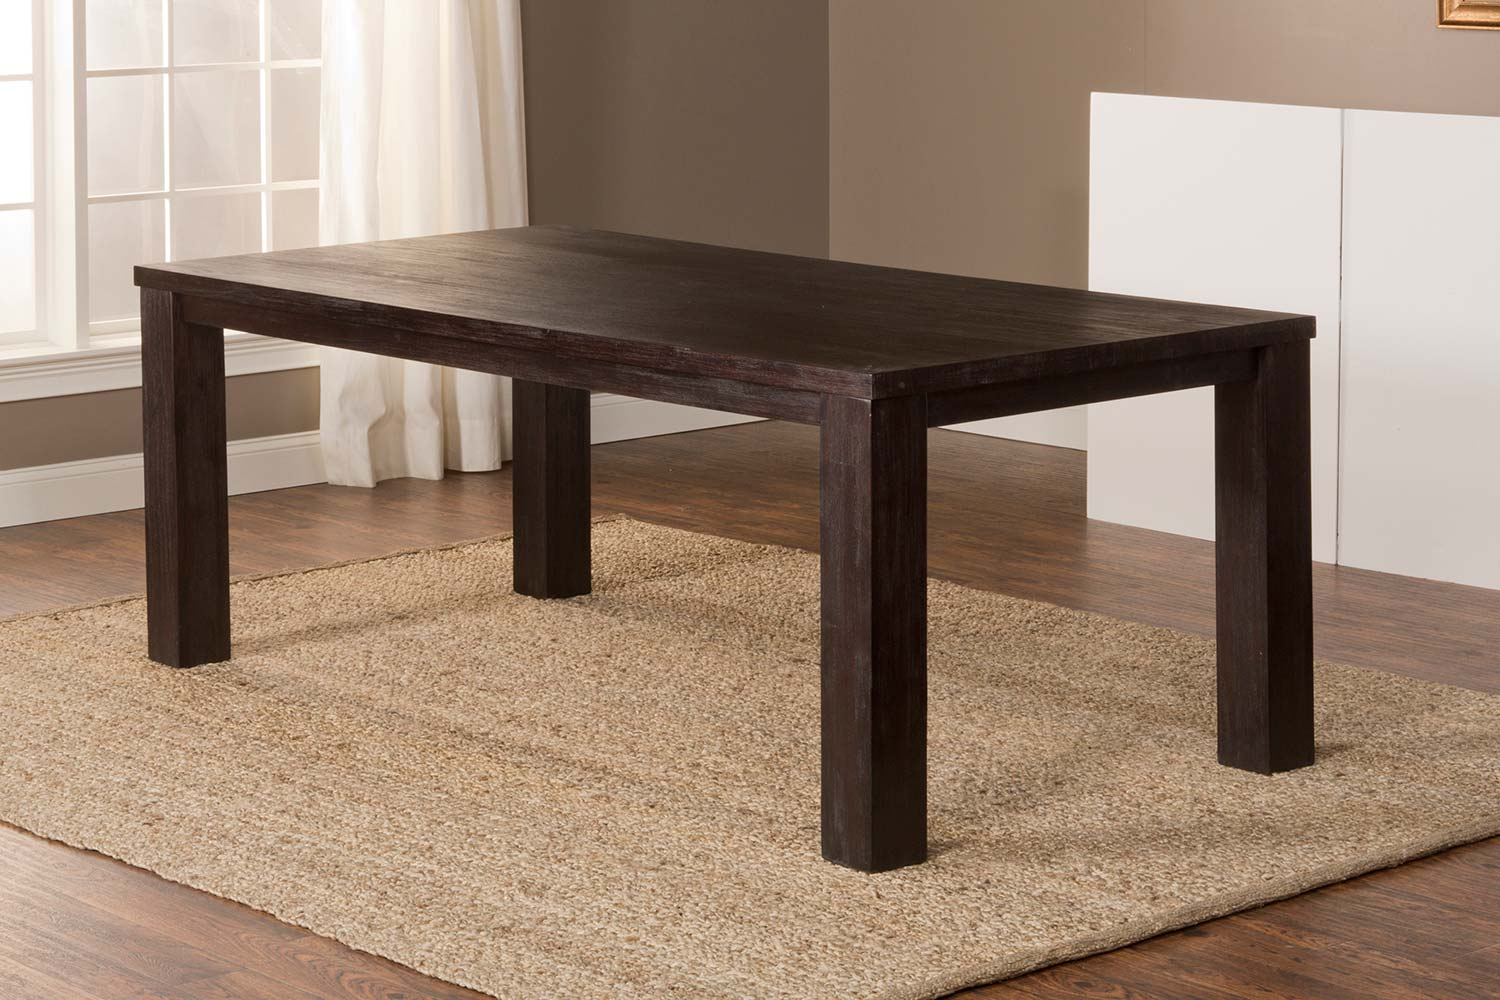 Hillsdale Simply Sydney Dining Table - Smoke Brown